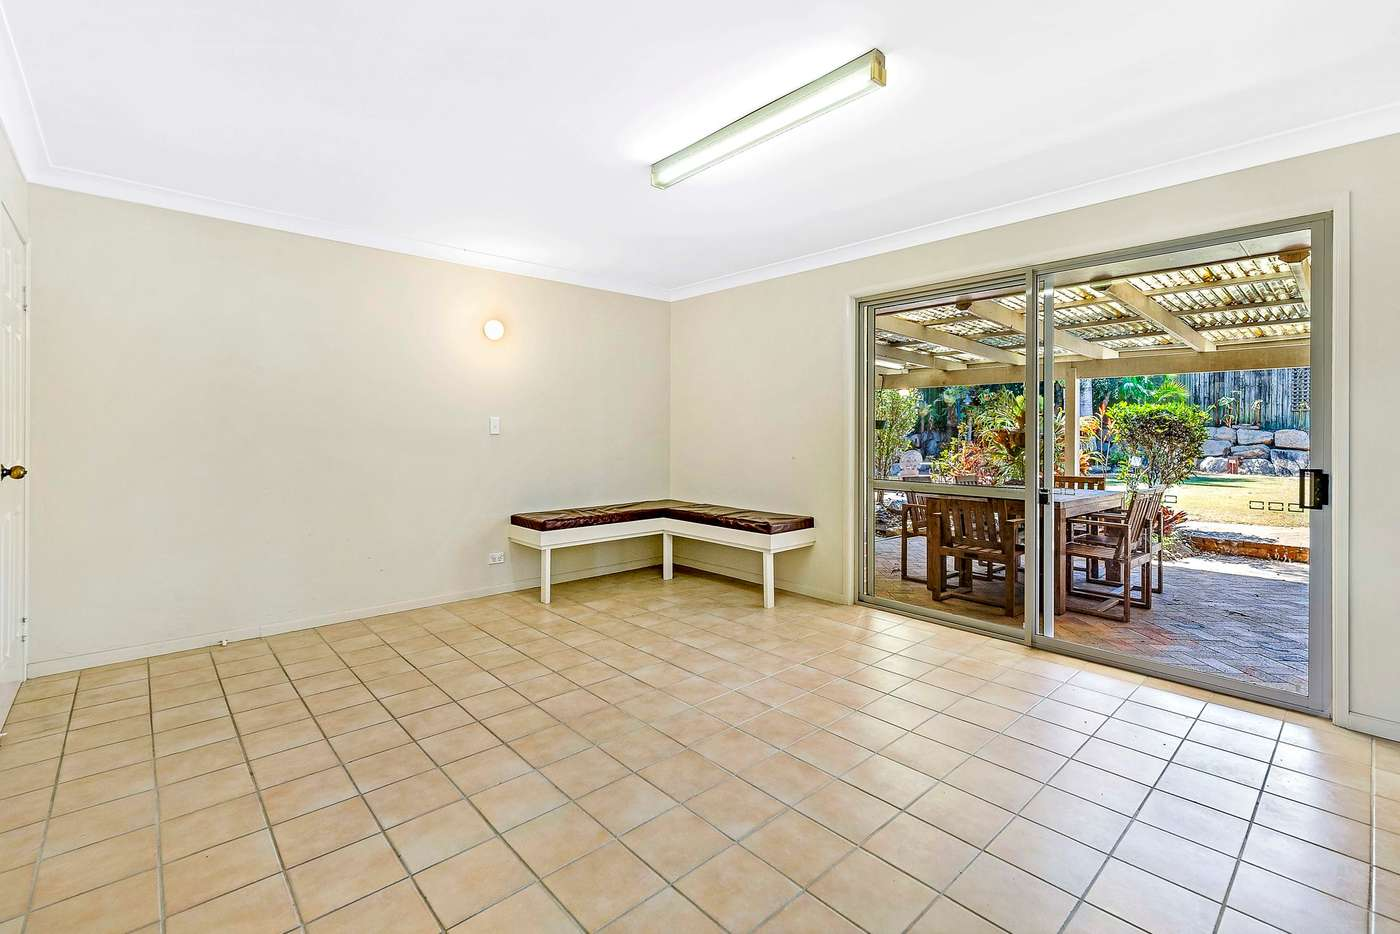 Sixth view of Homely house listing, 9 Mingah Crescent, Shailer Park QLD 4128